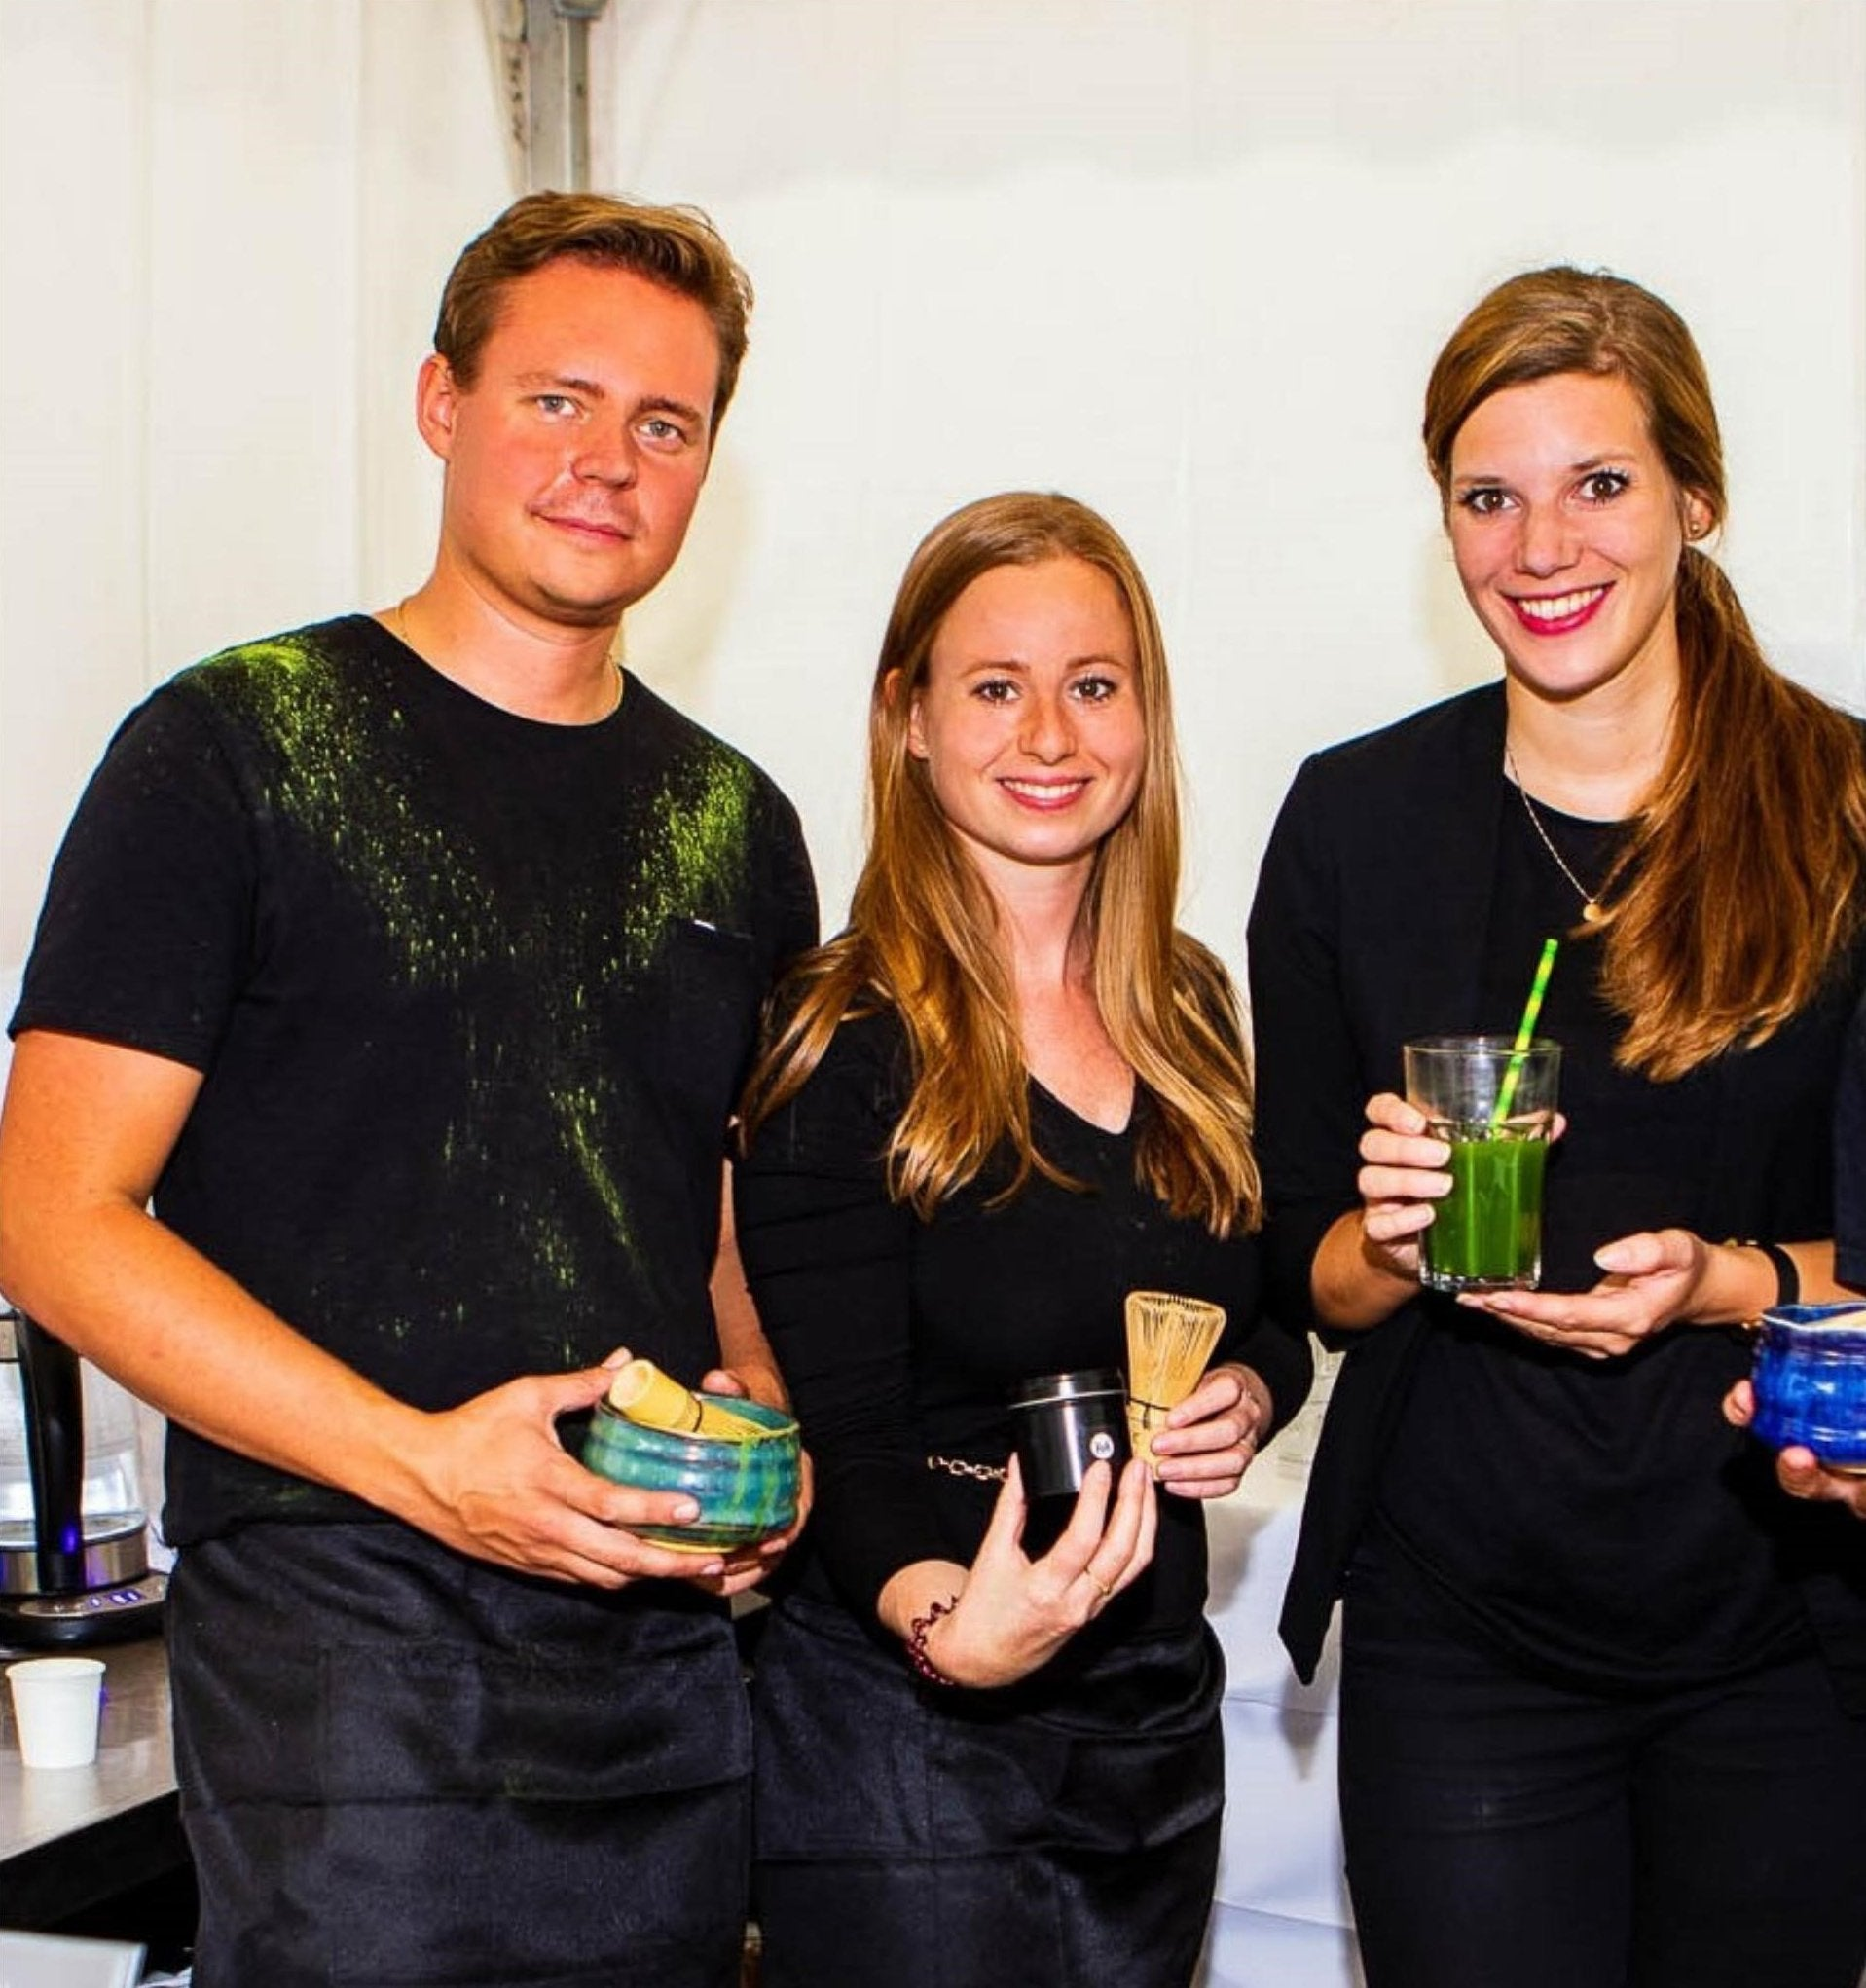 Mindful Matcha Team - © Mindful Matcha